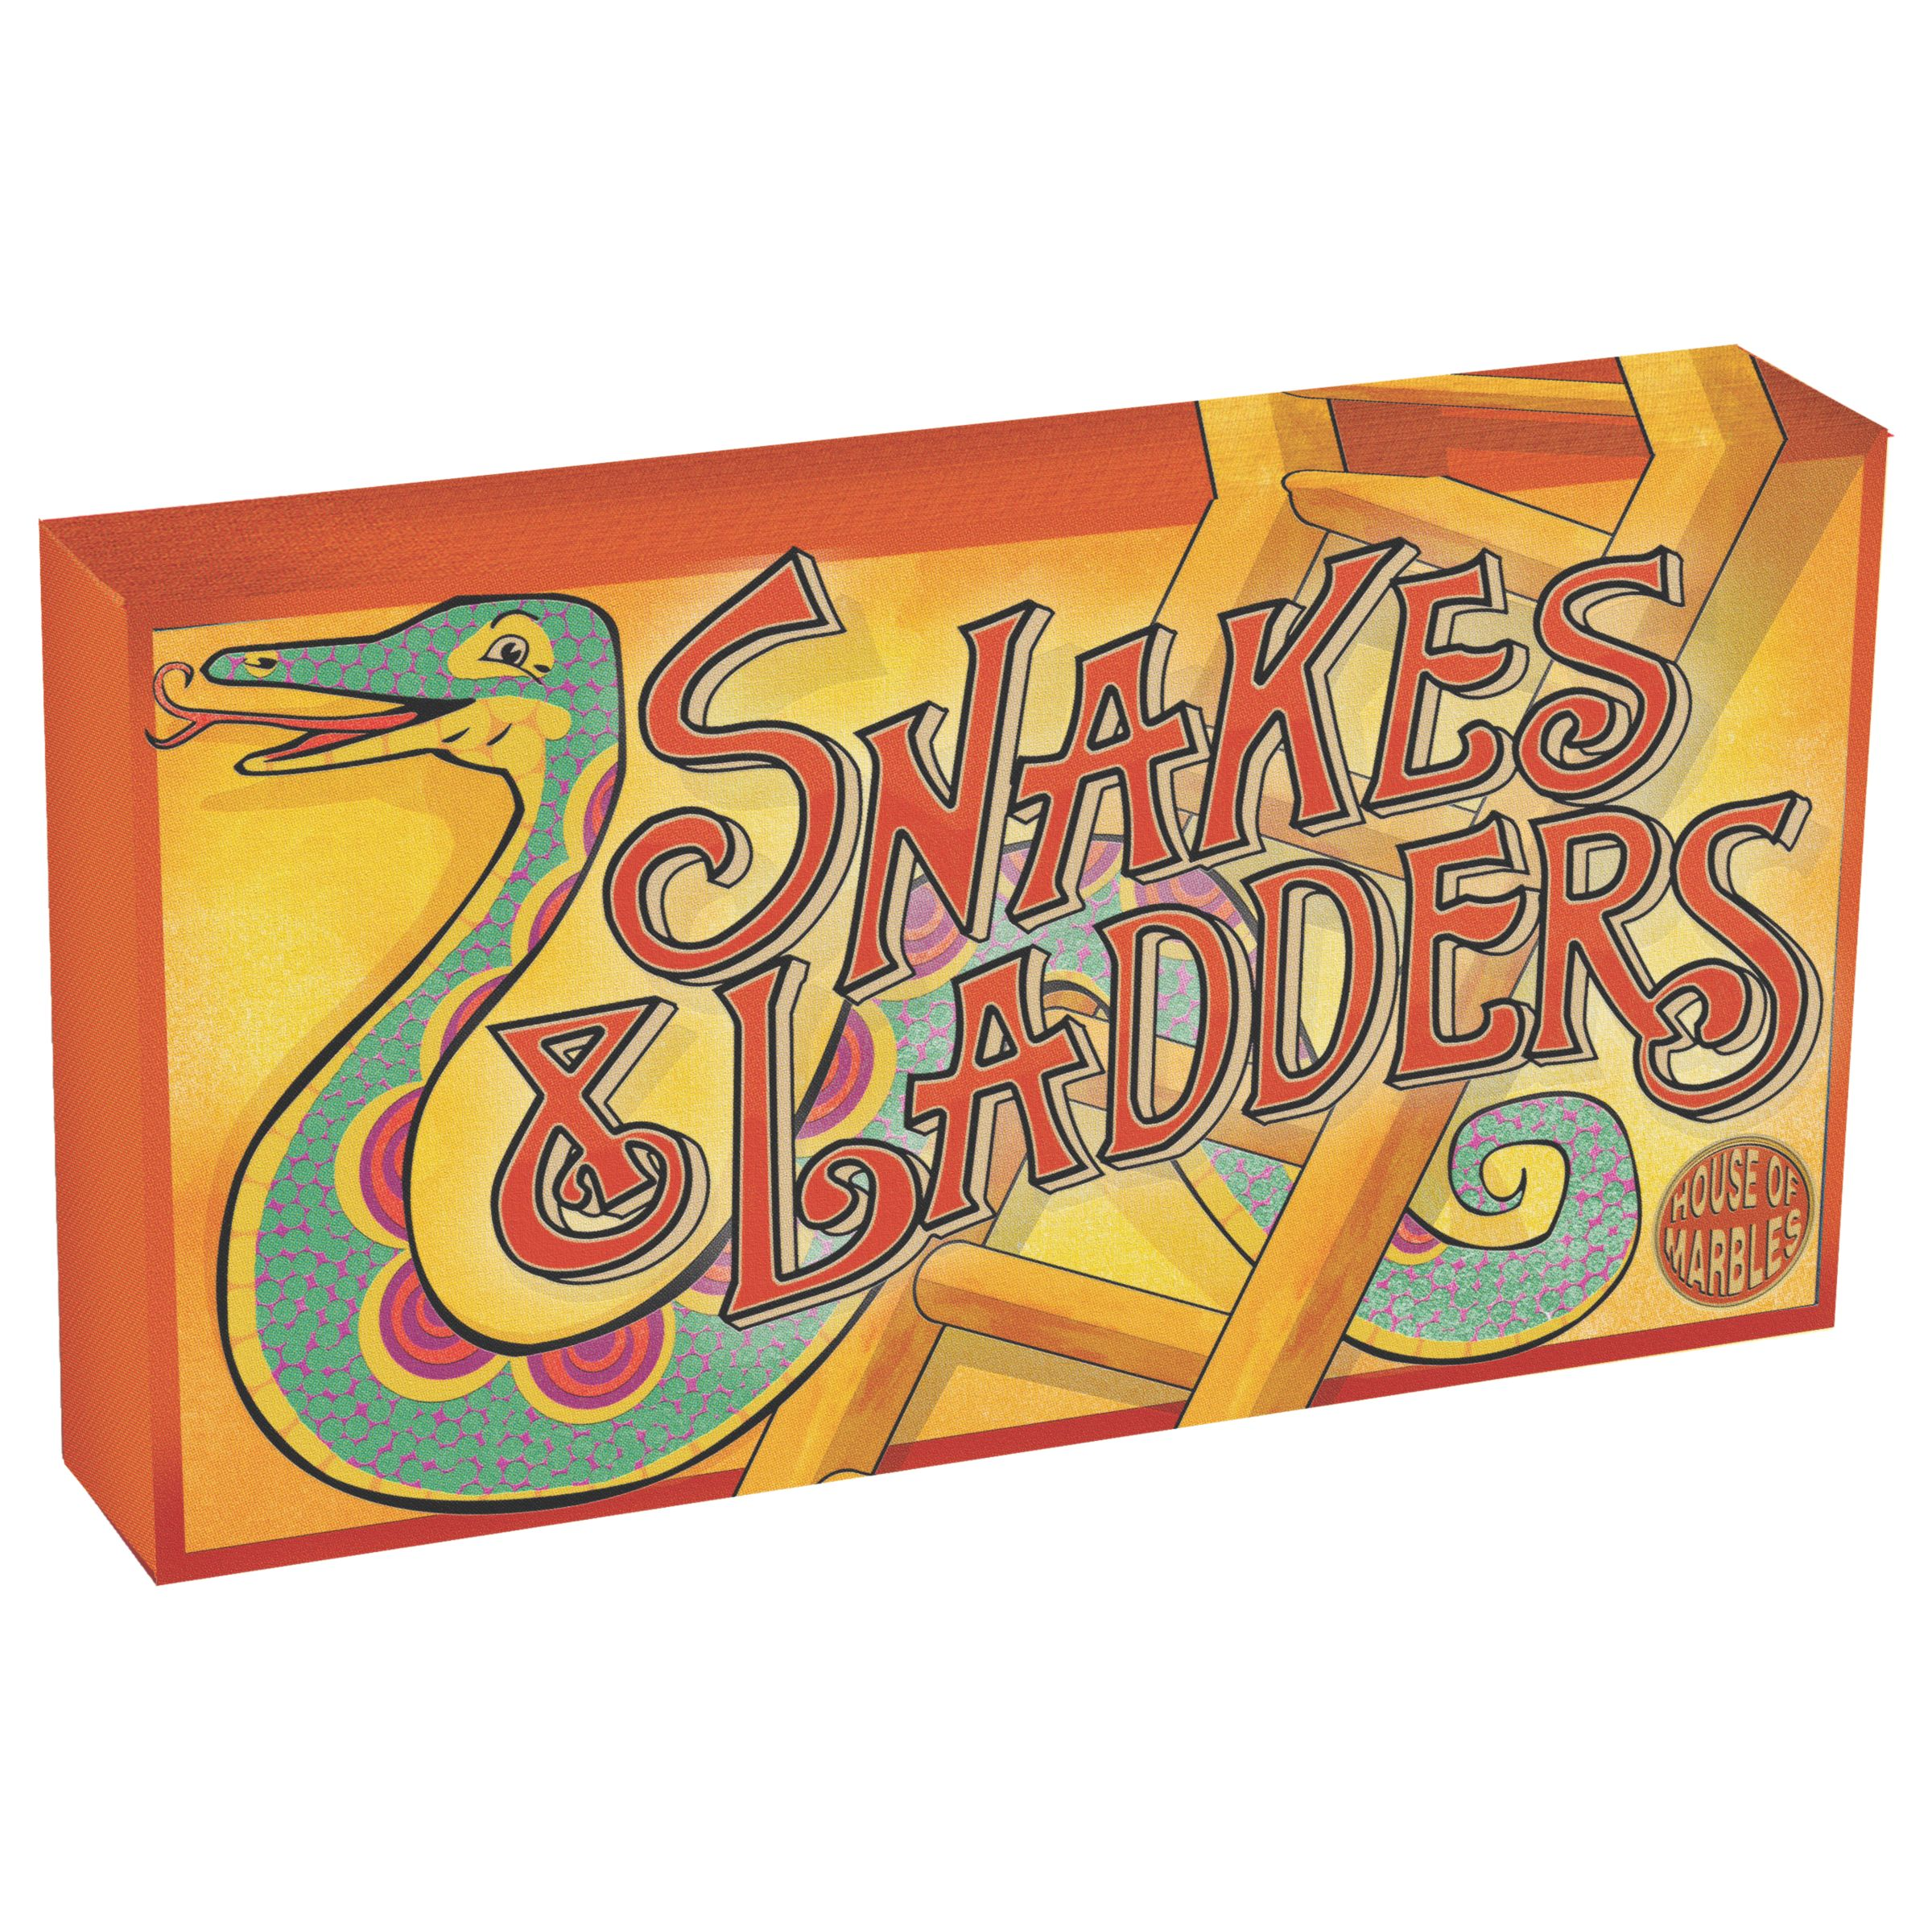 House of Marbles House of Marbles Snakes and Ladders Vintage Style Board Game